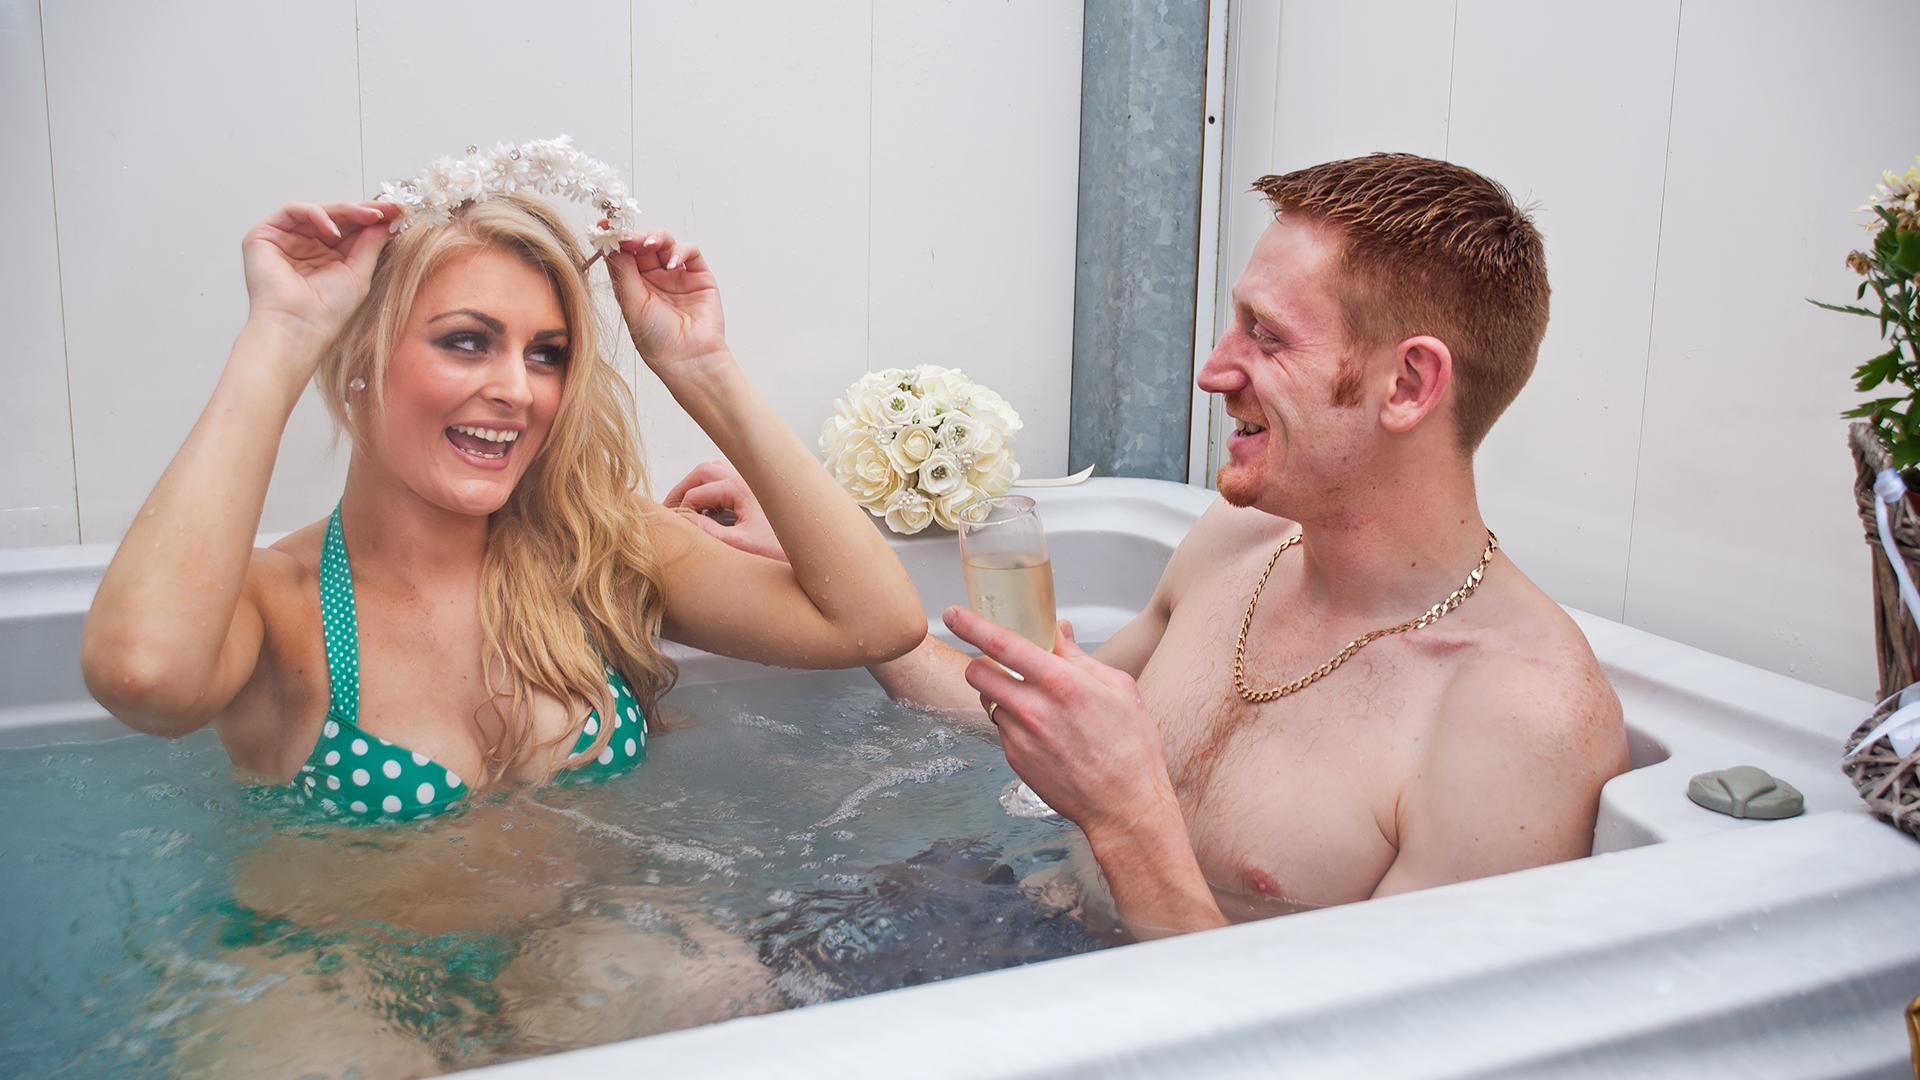 Couple Sharing Luxury Bath in Ensuite Bathroom enjoying complimentary wine